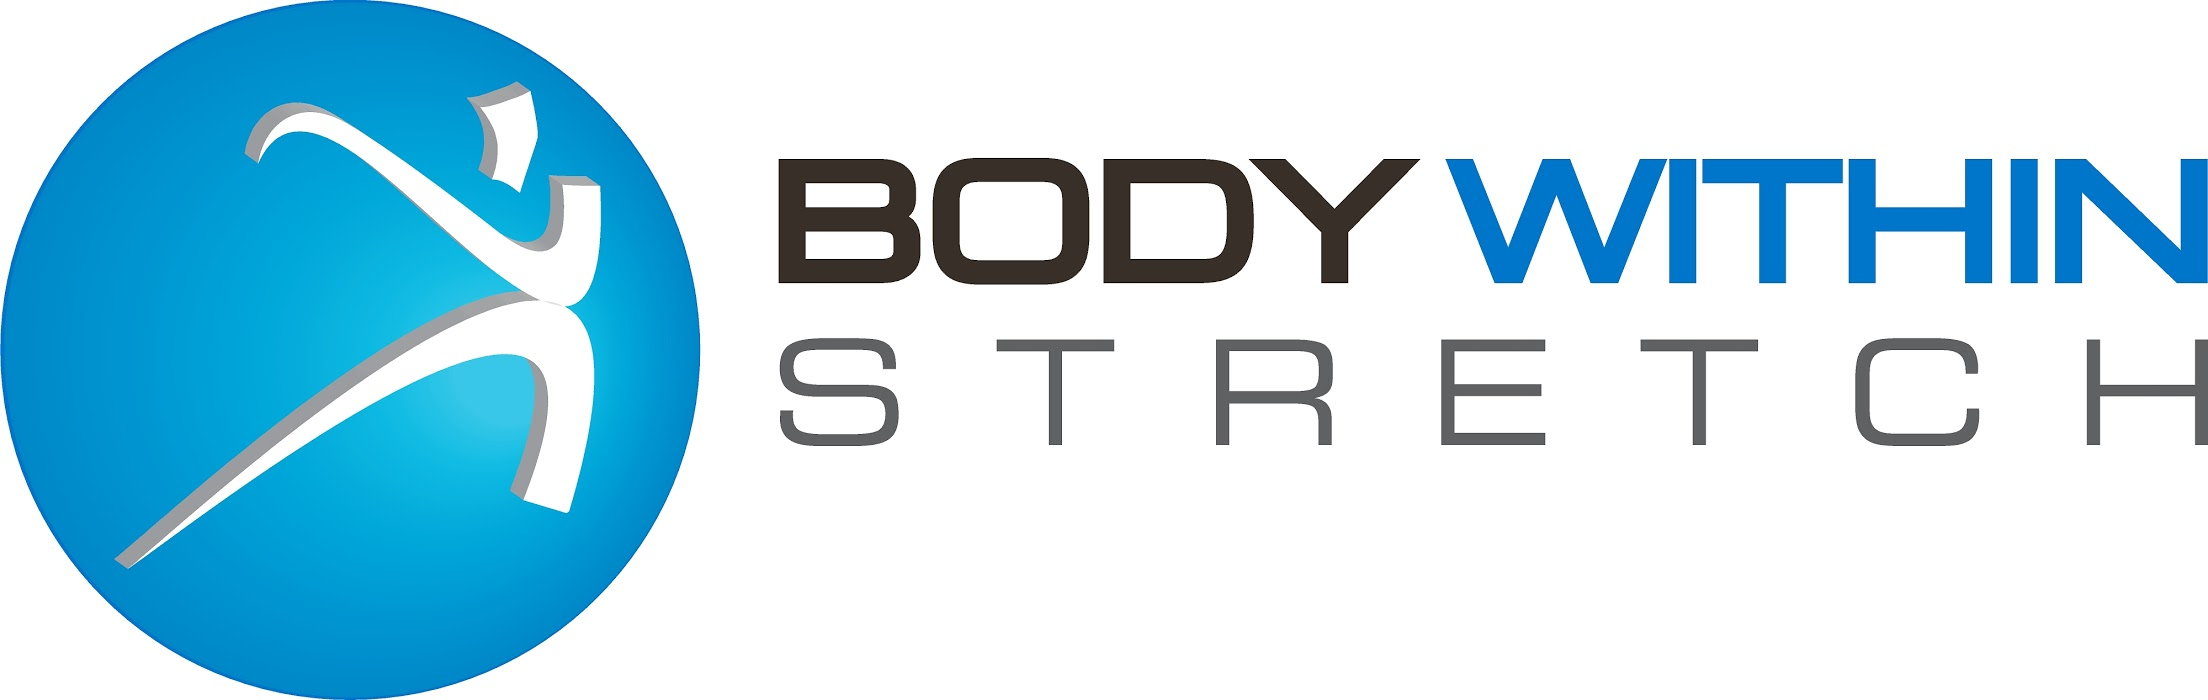 bodywithin fit stretch